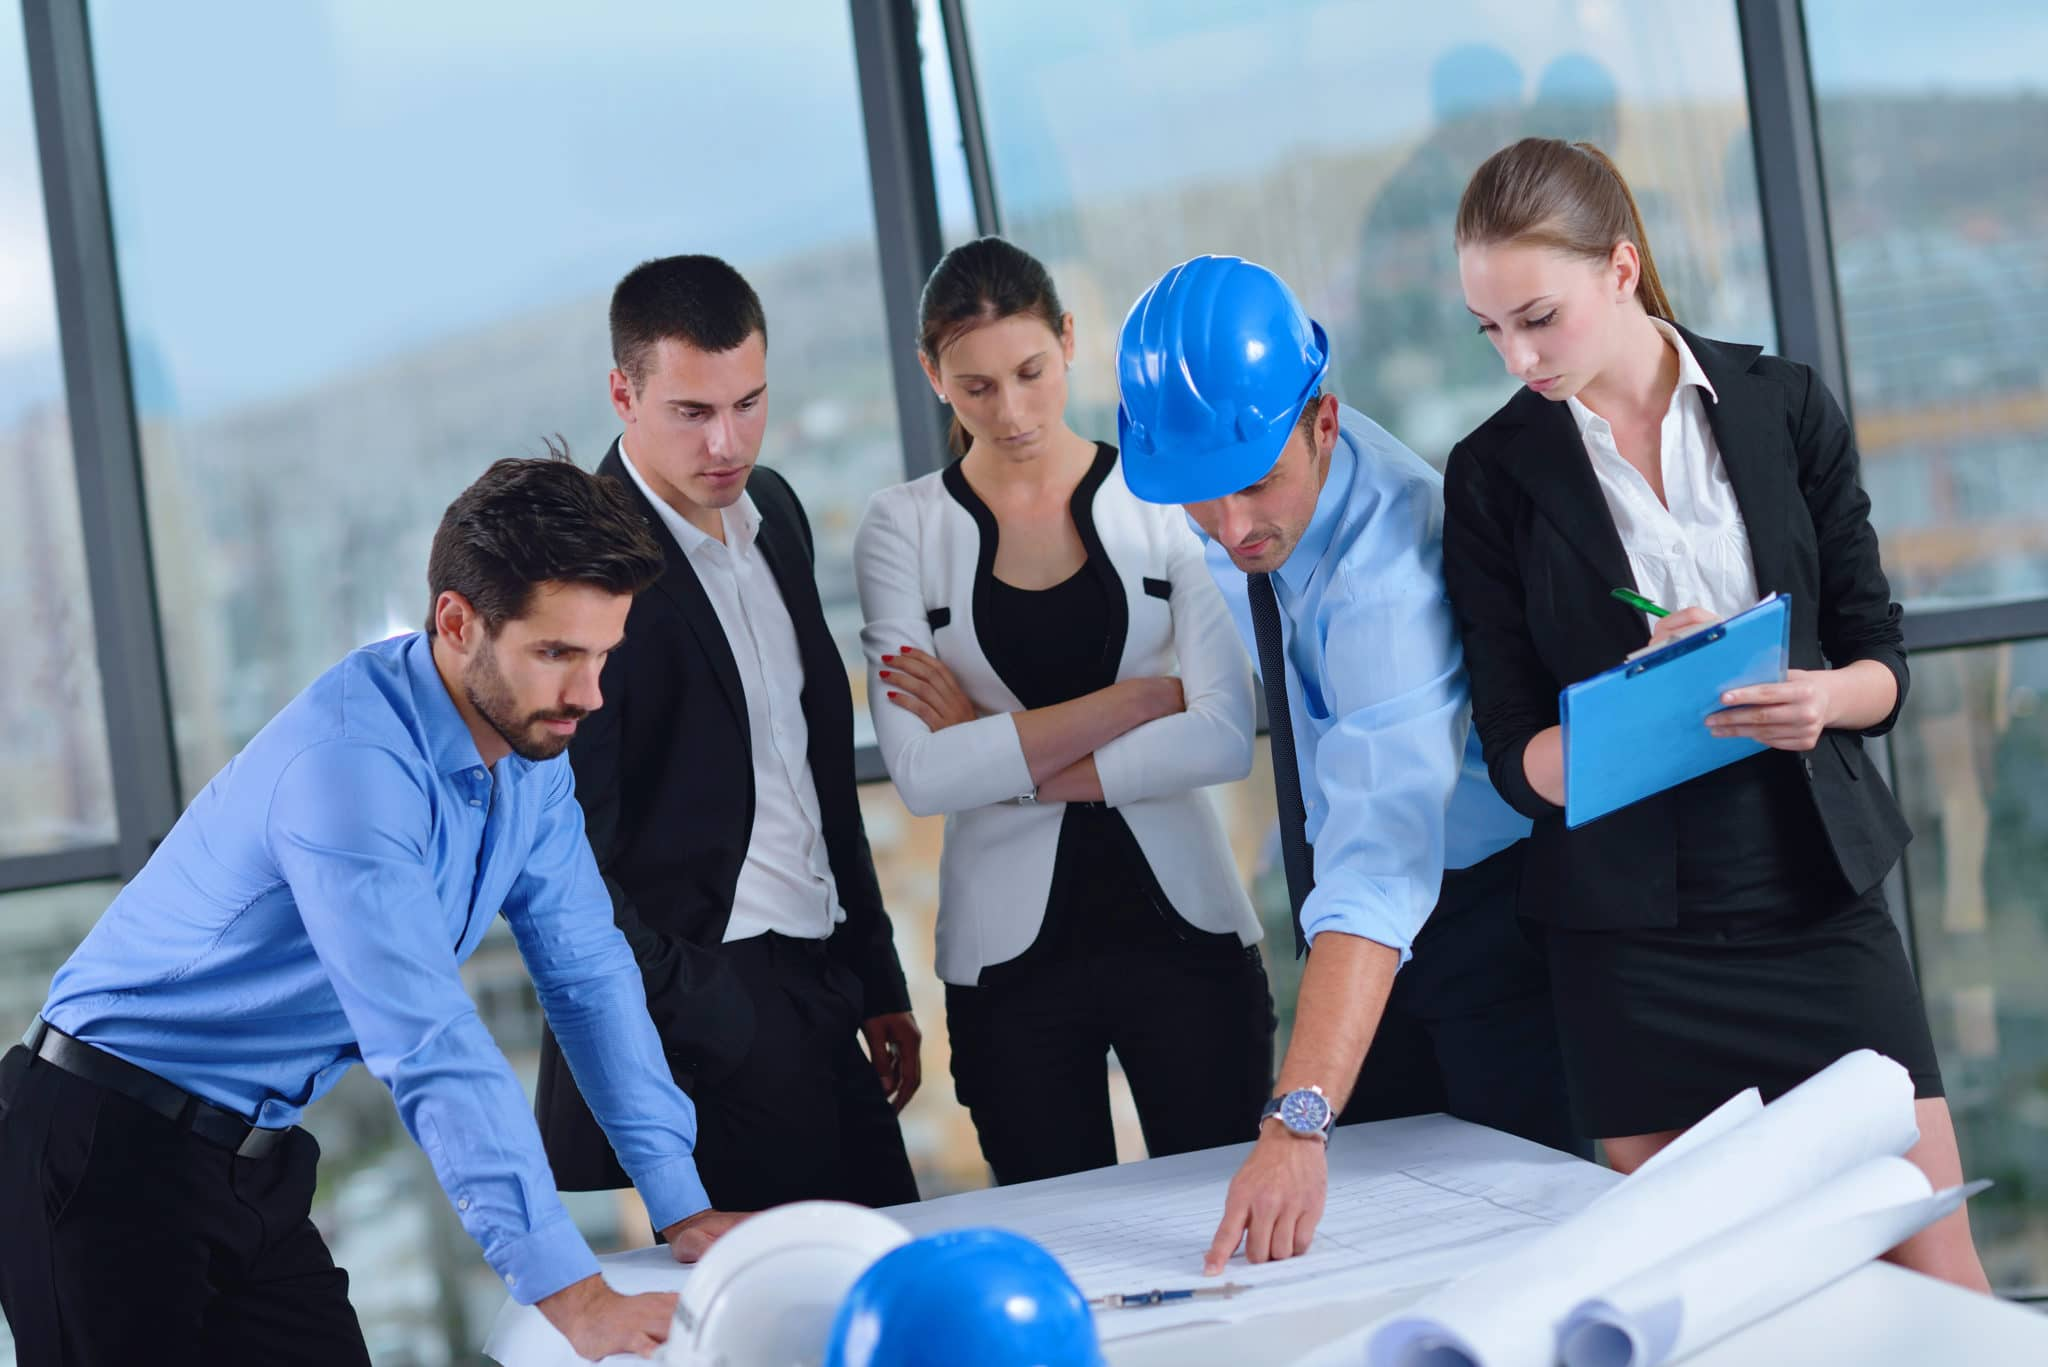 New Jersey Project Planning Attorneys - Energy, Pipeline, Construction